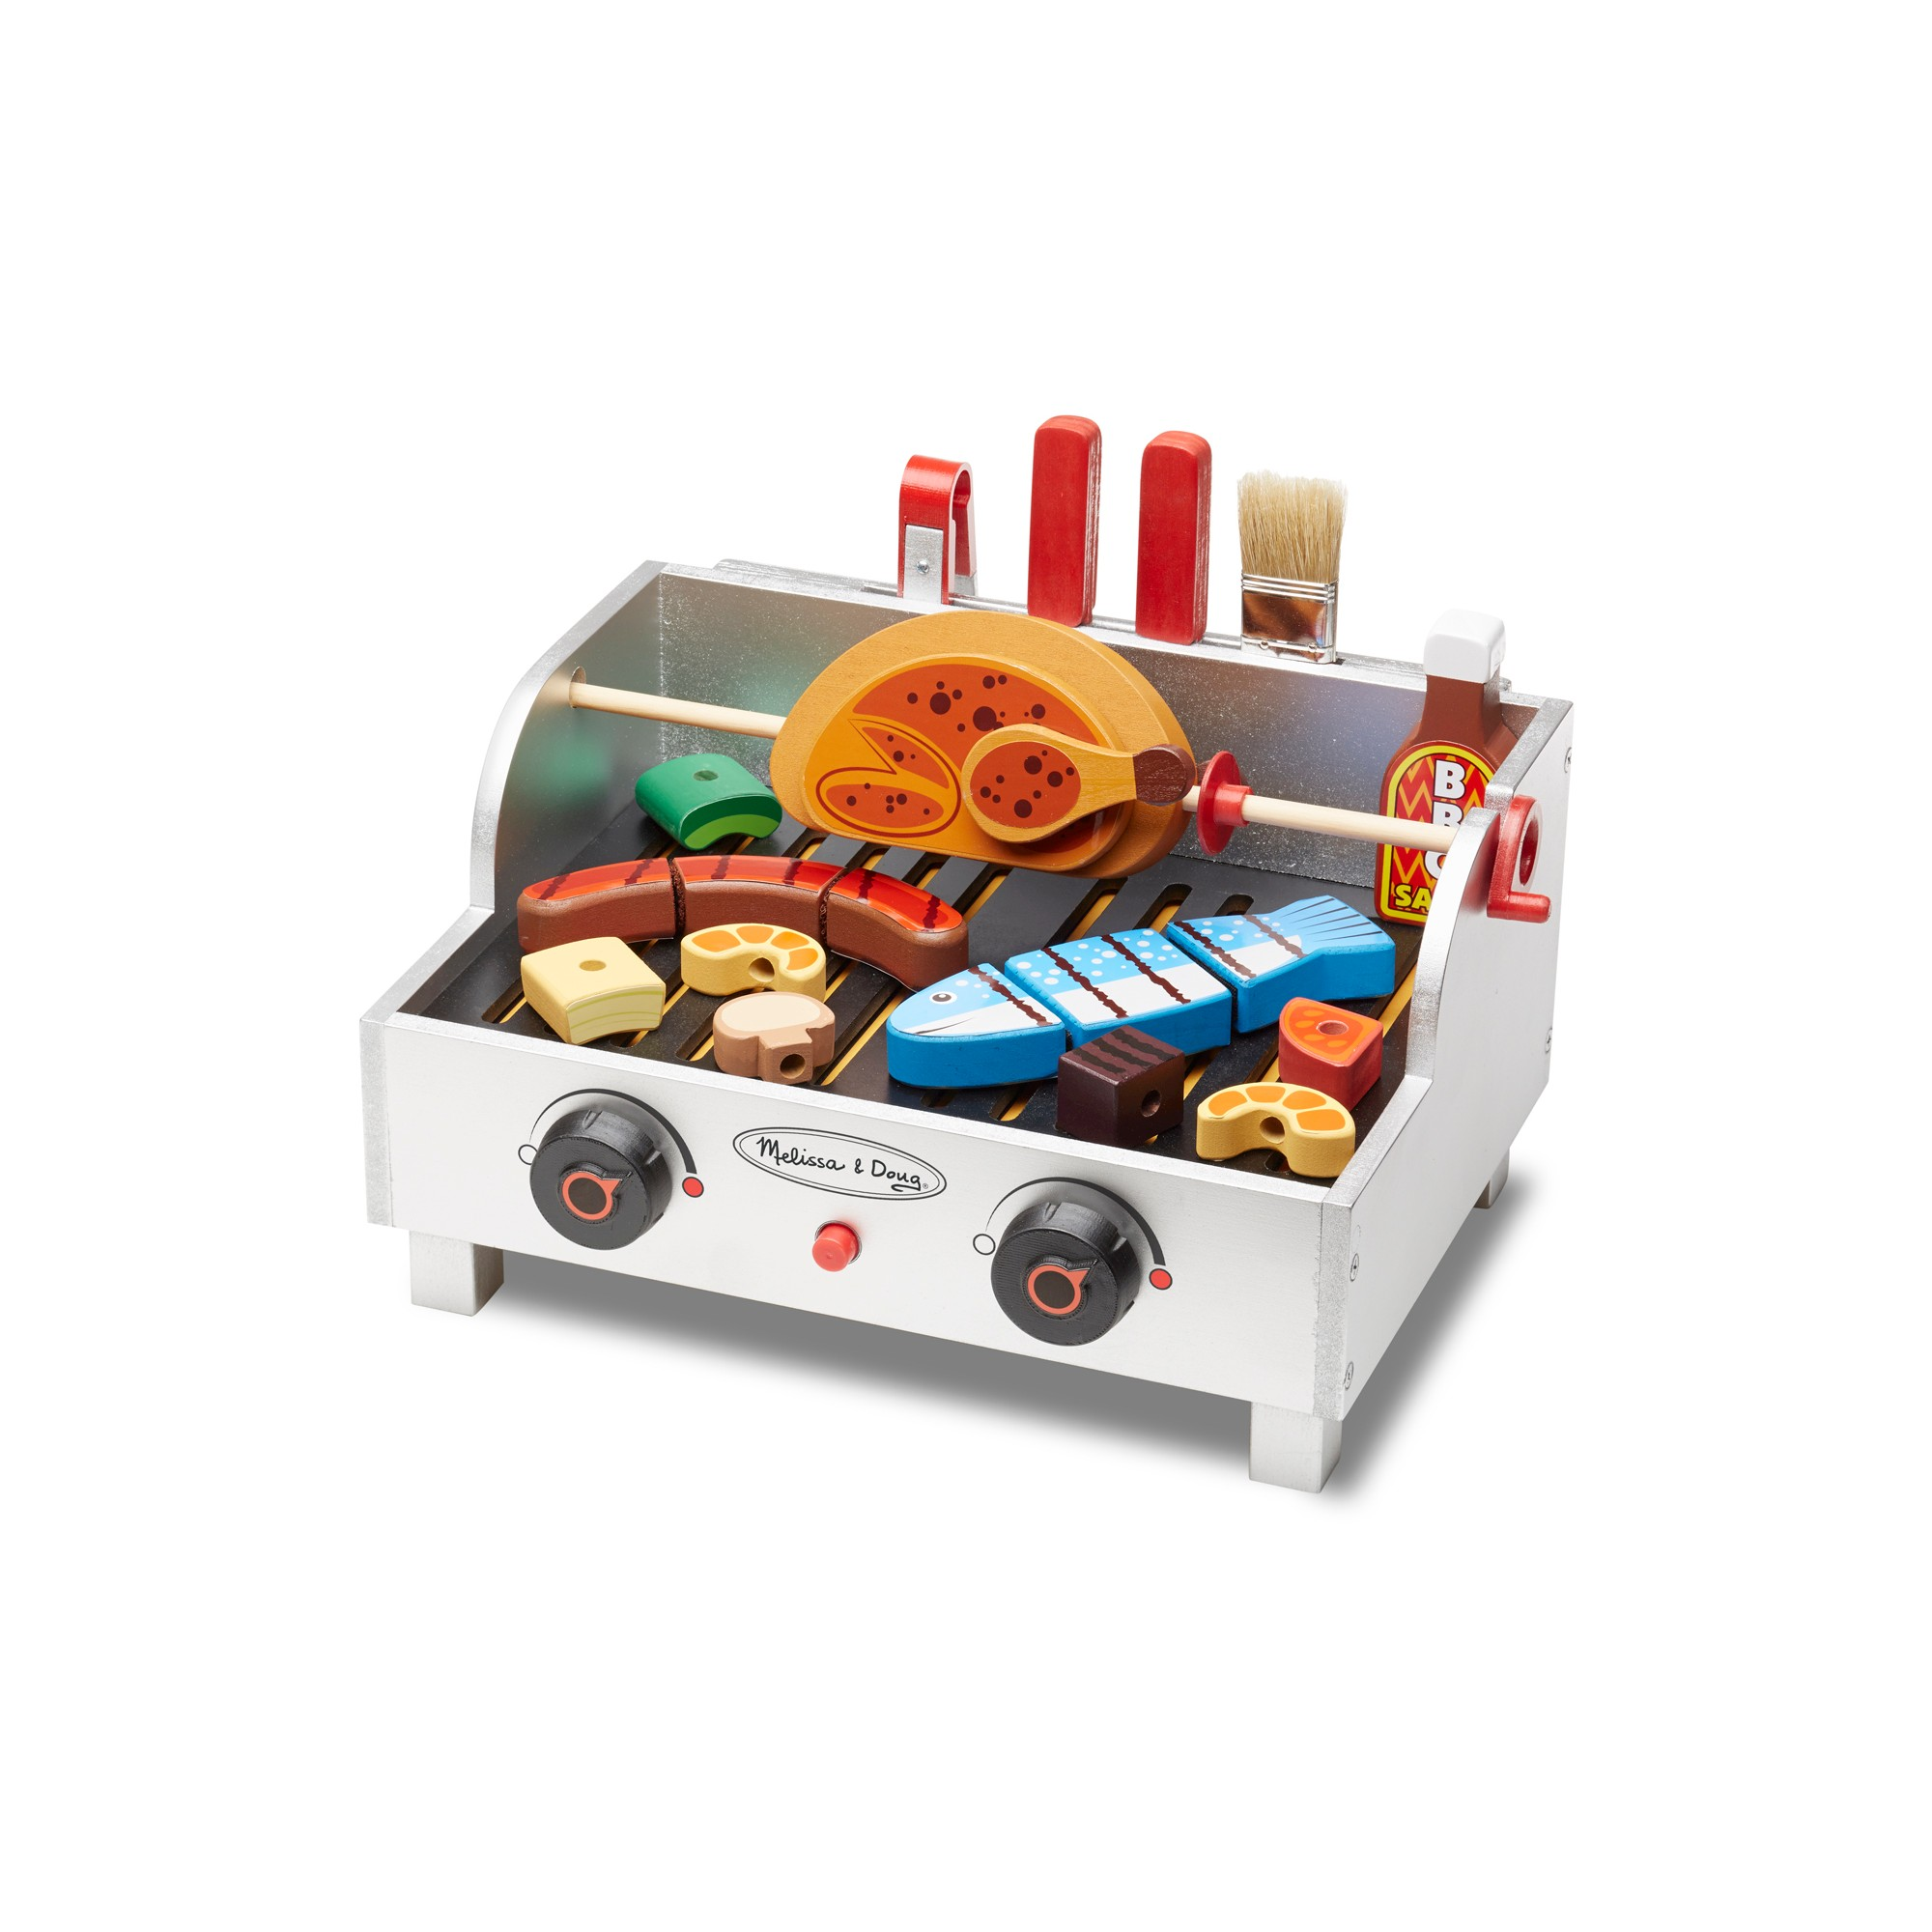 Melissa Doug Rotisserie And Grill Wooden Barbecue Play